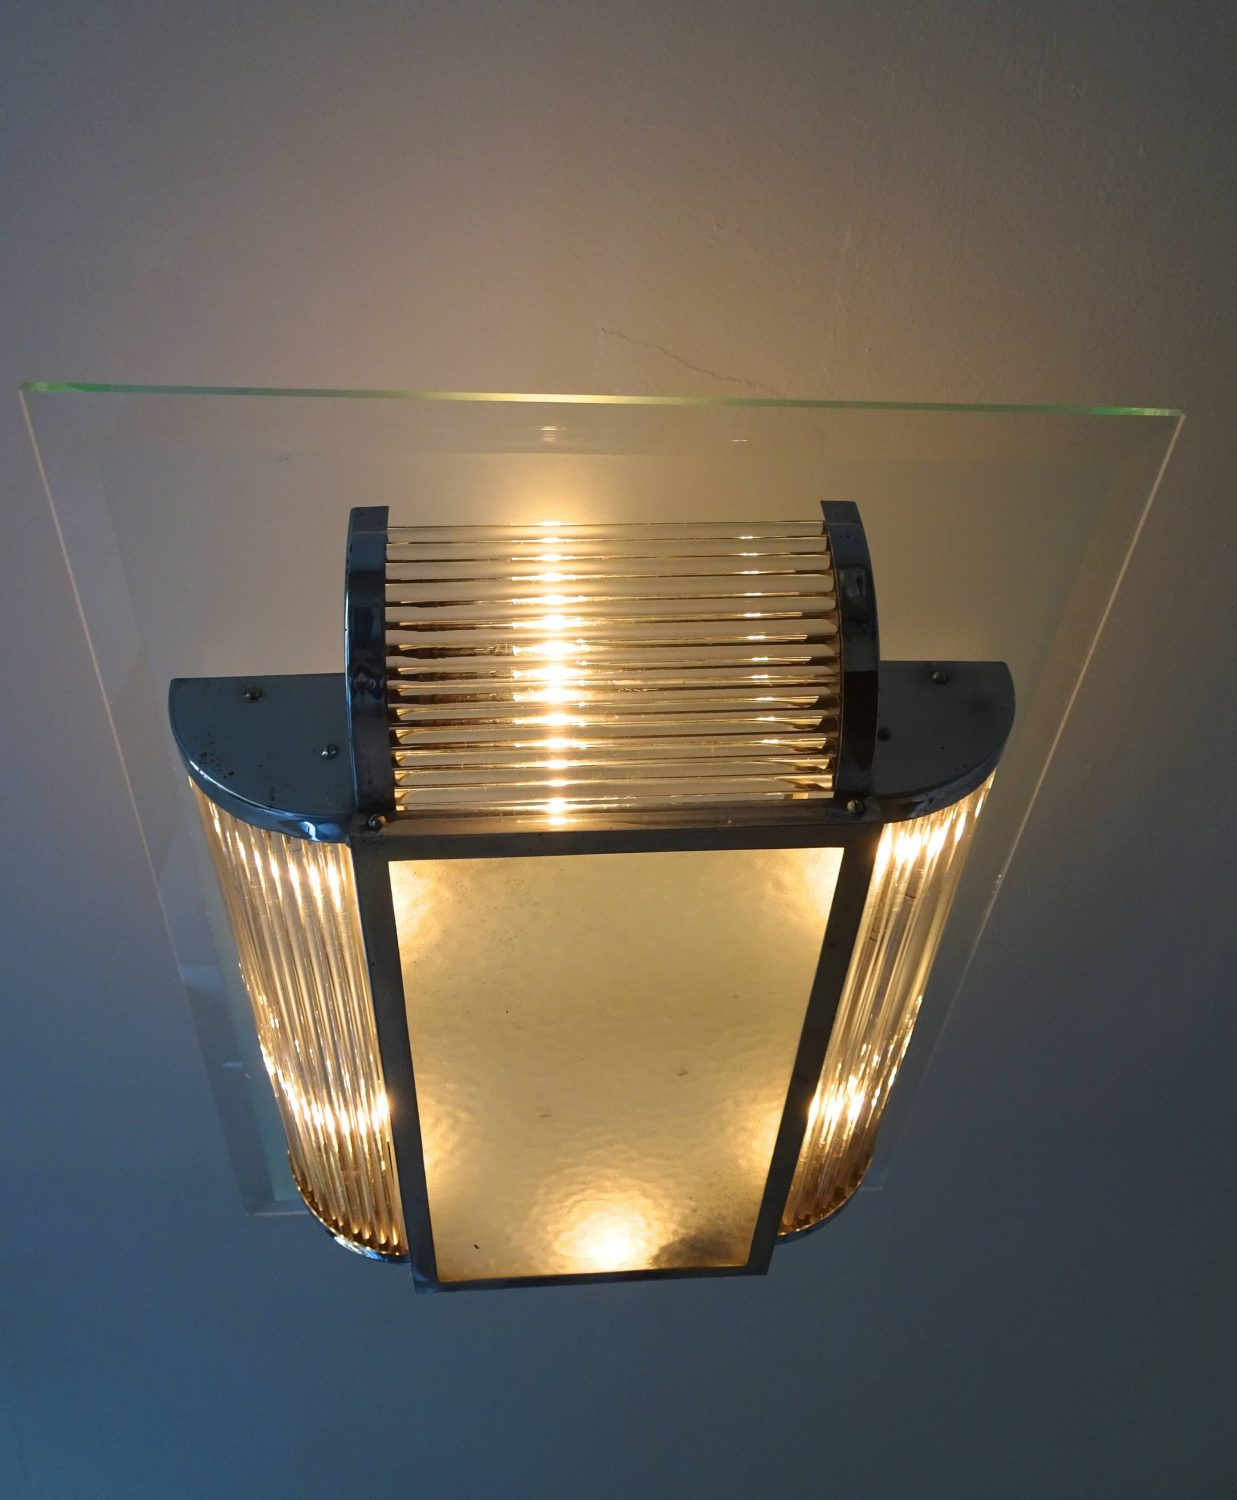 Art Deco Deckenleuchte Rene Pottier - Art Deco Ceiling Lamp | Art Nouveau & Art Deco Tandem Gallery